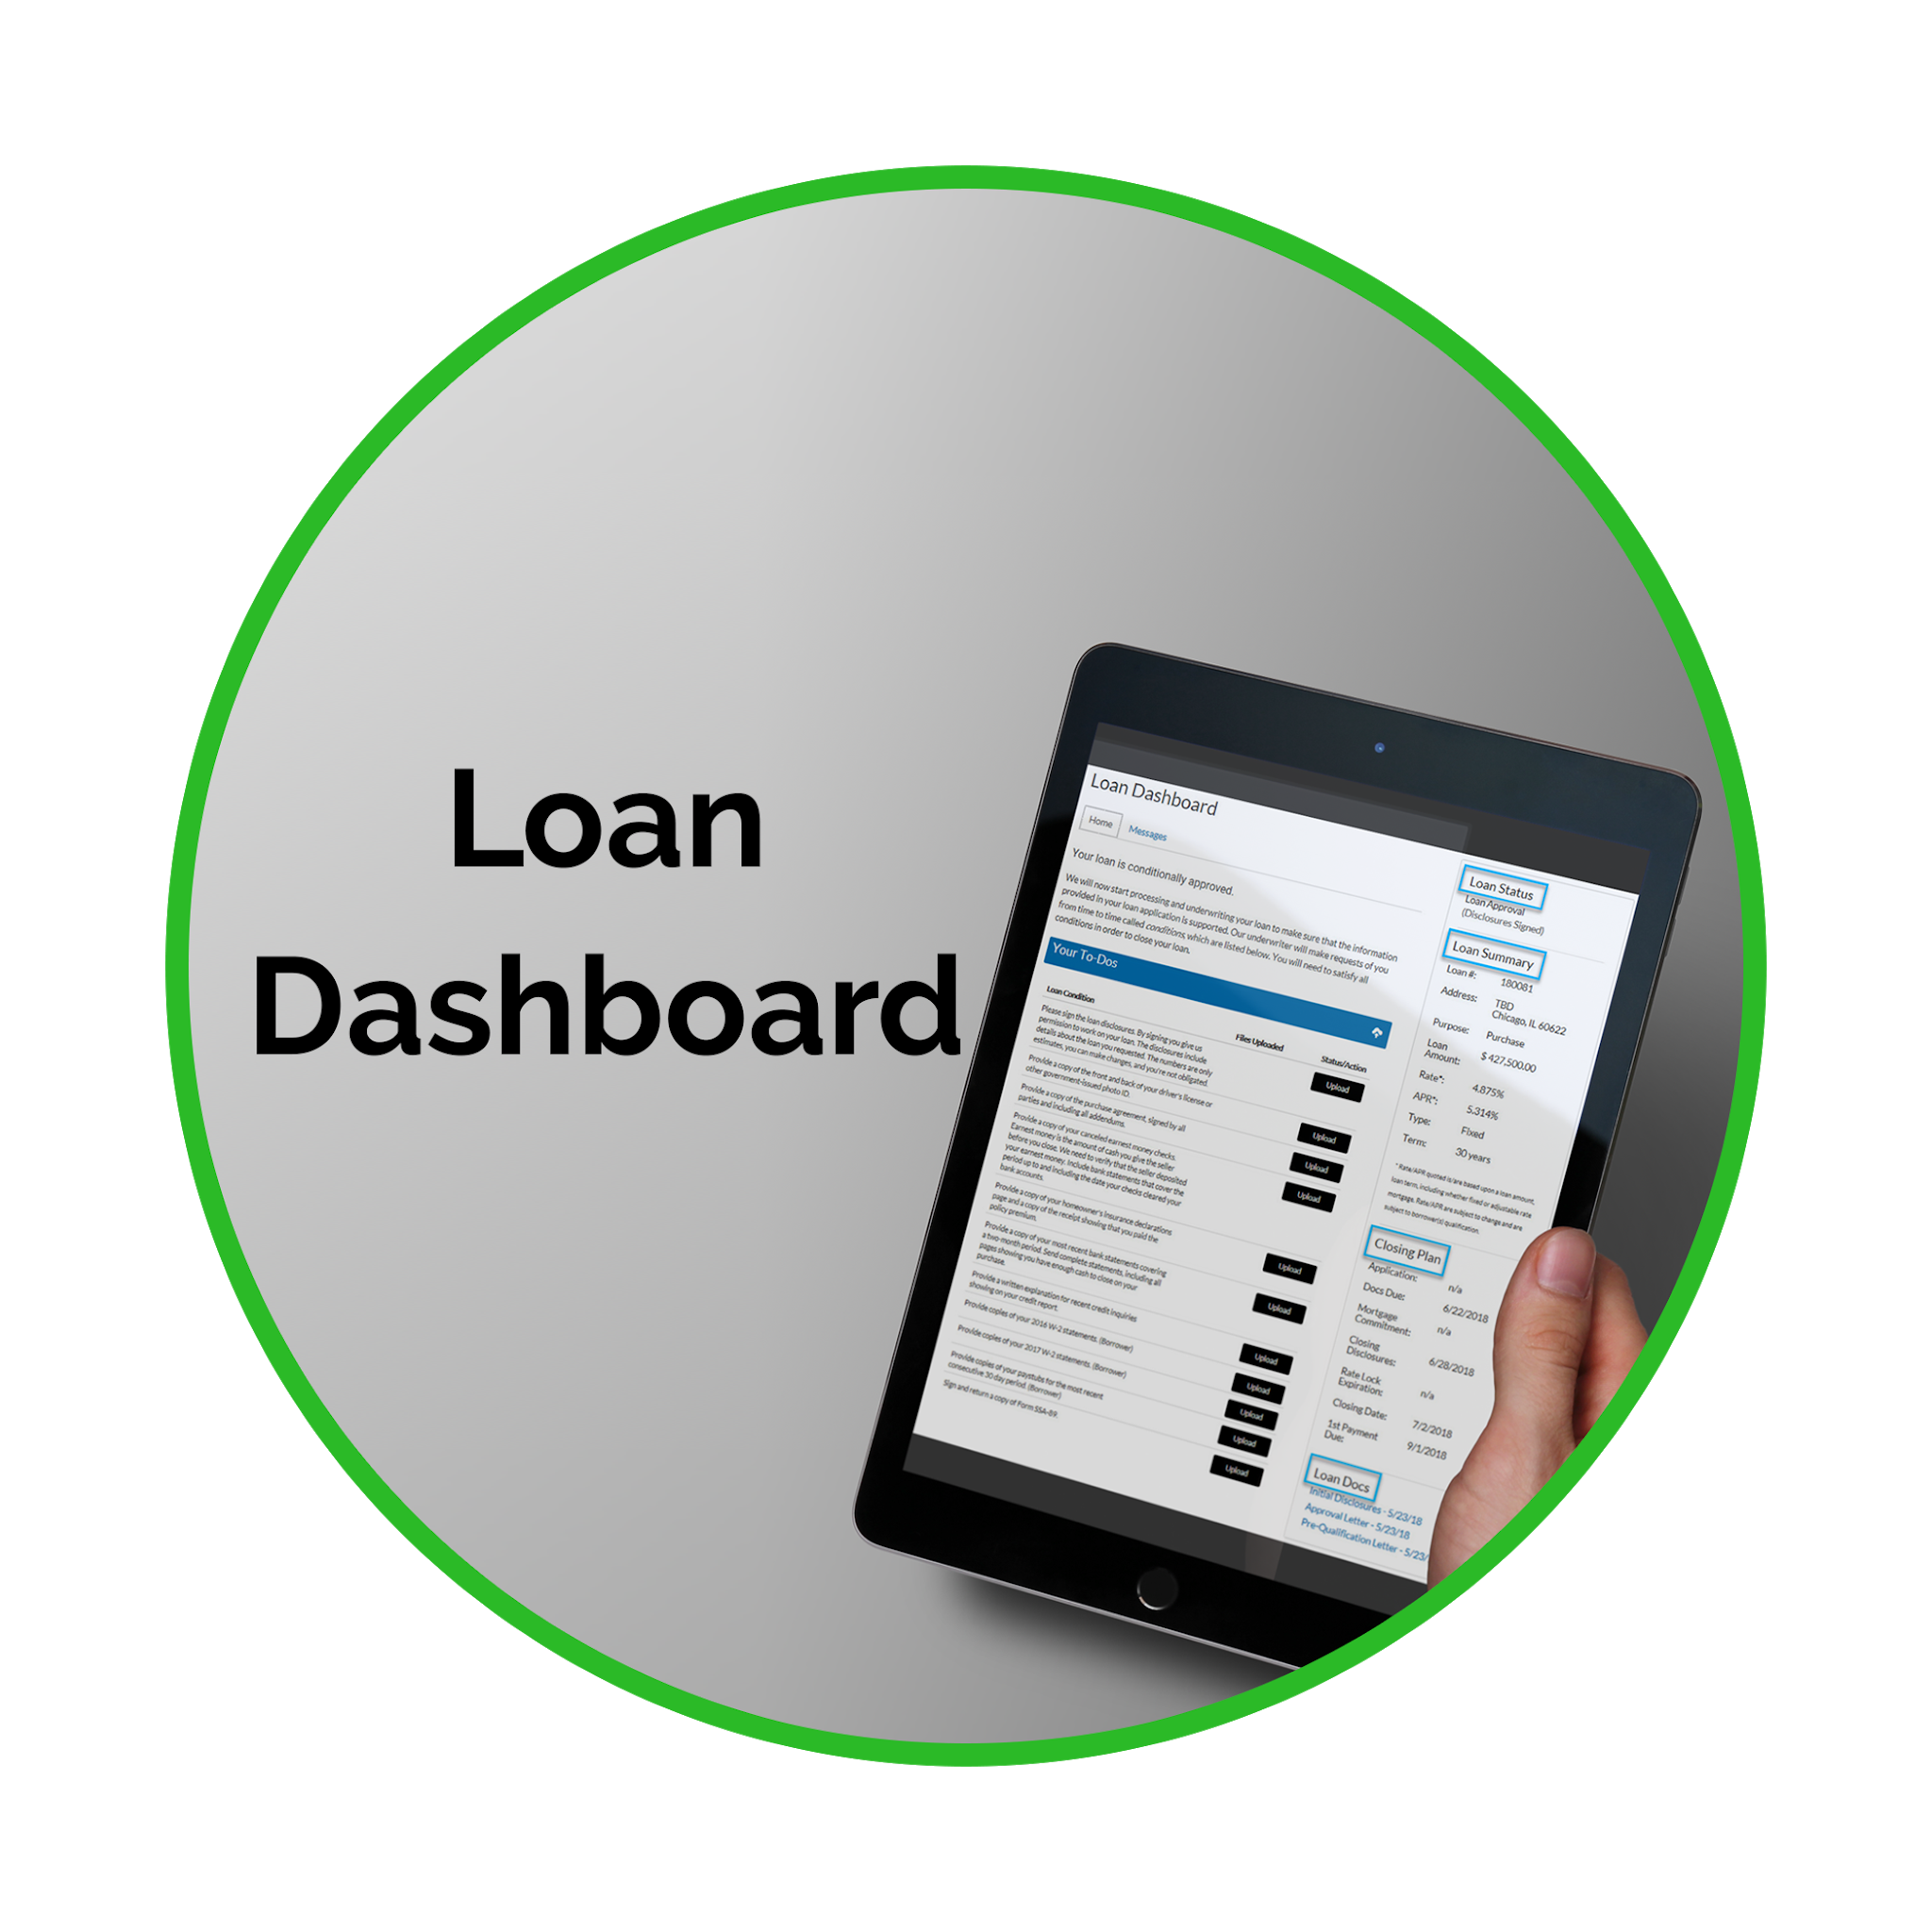 Loan Dashboard